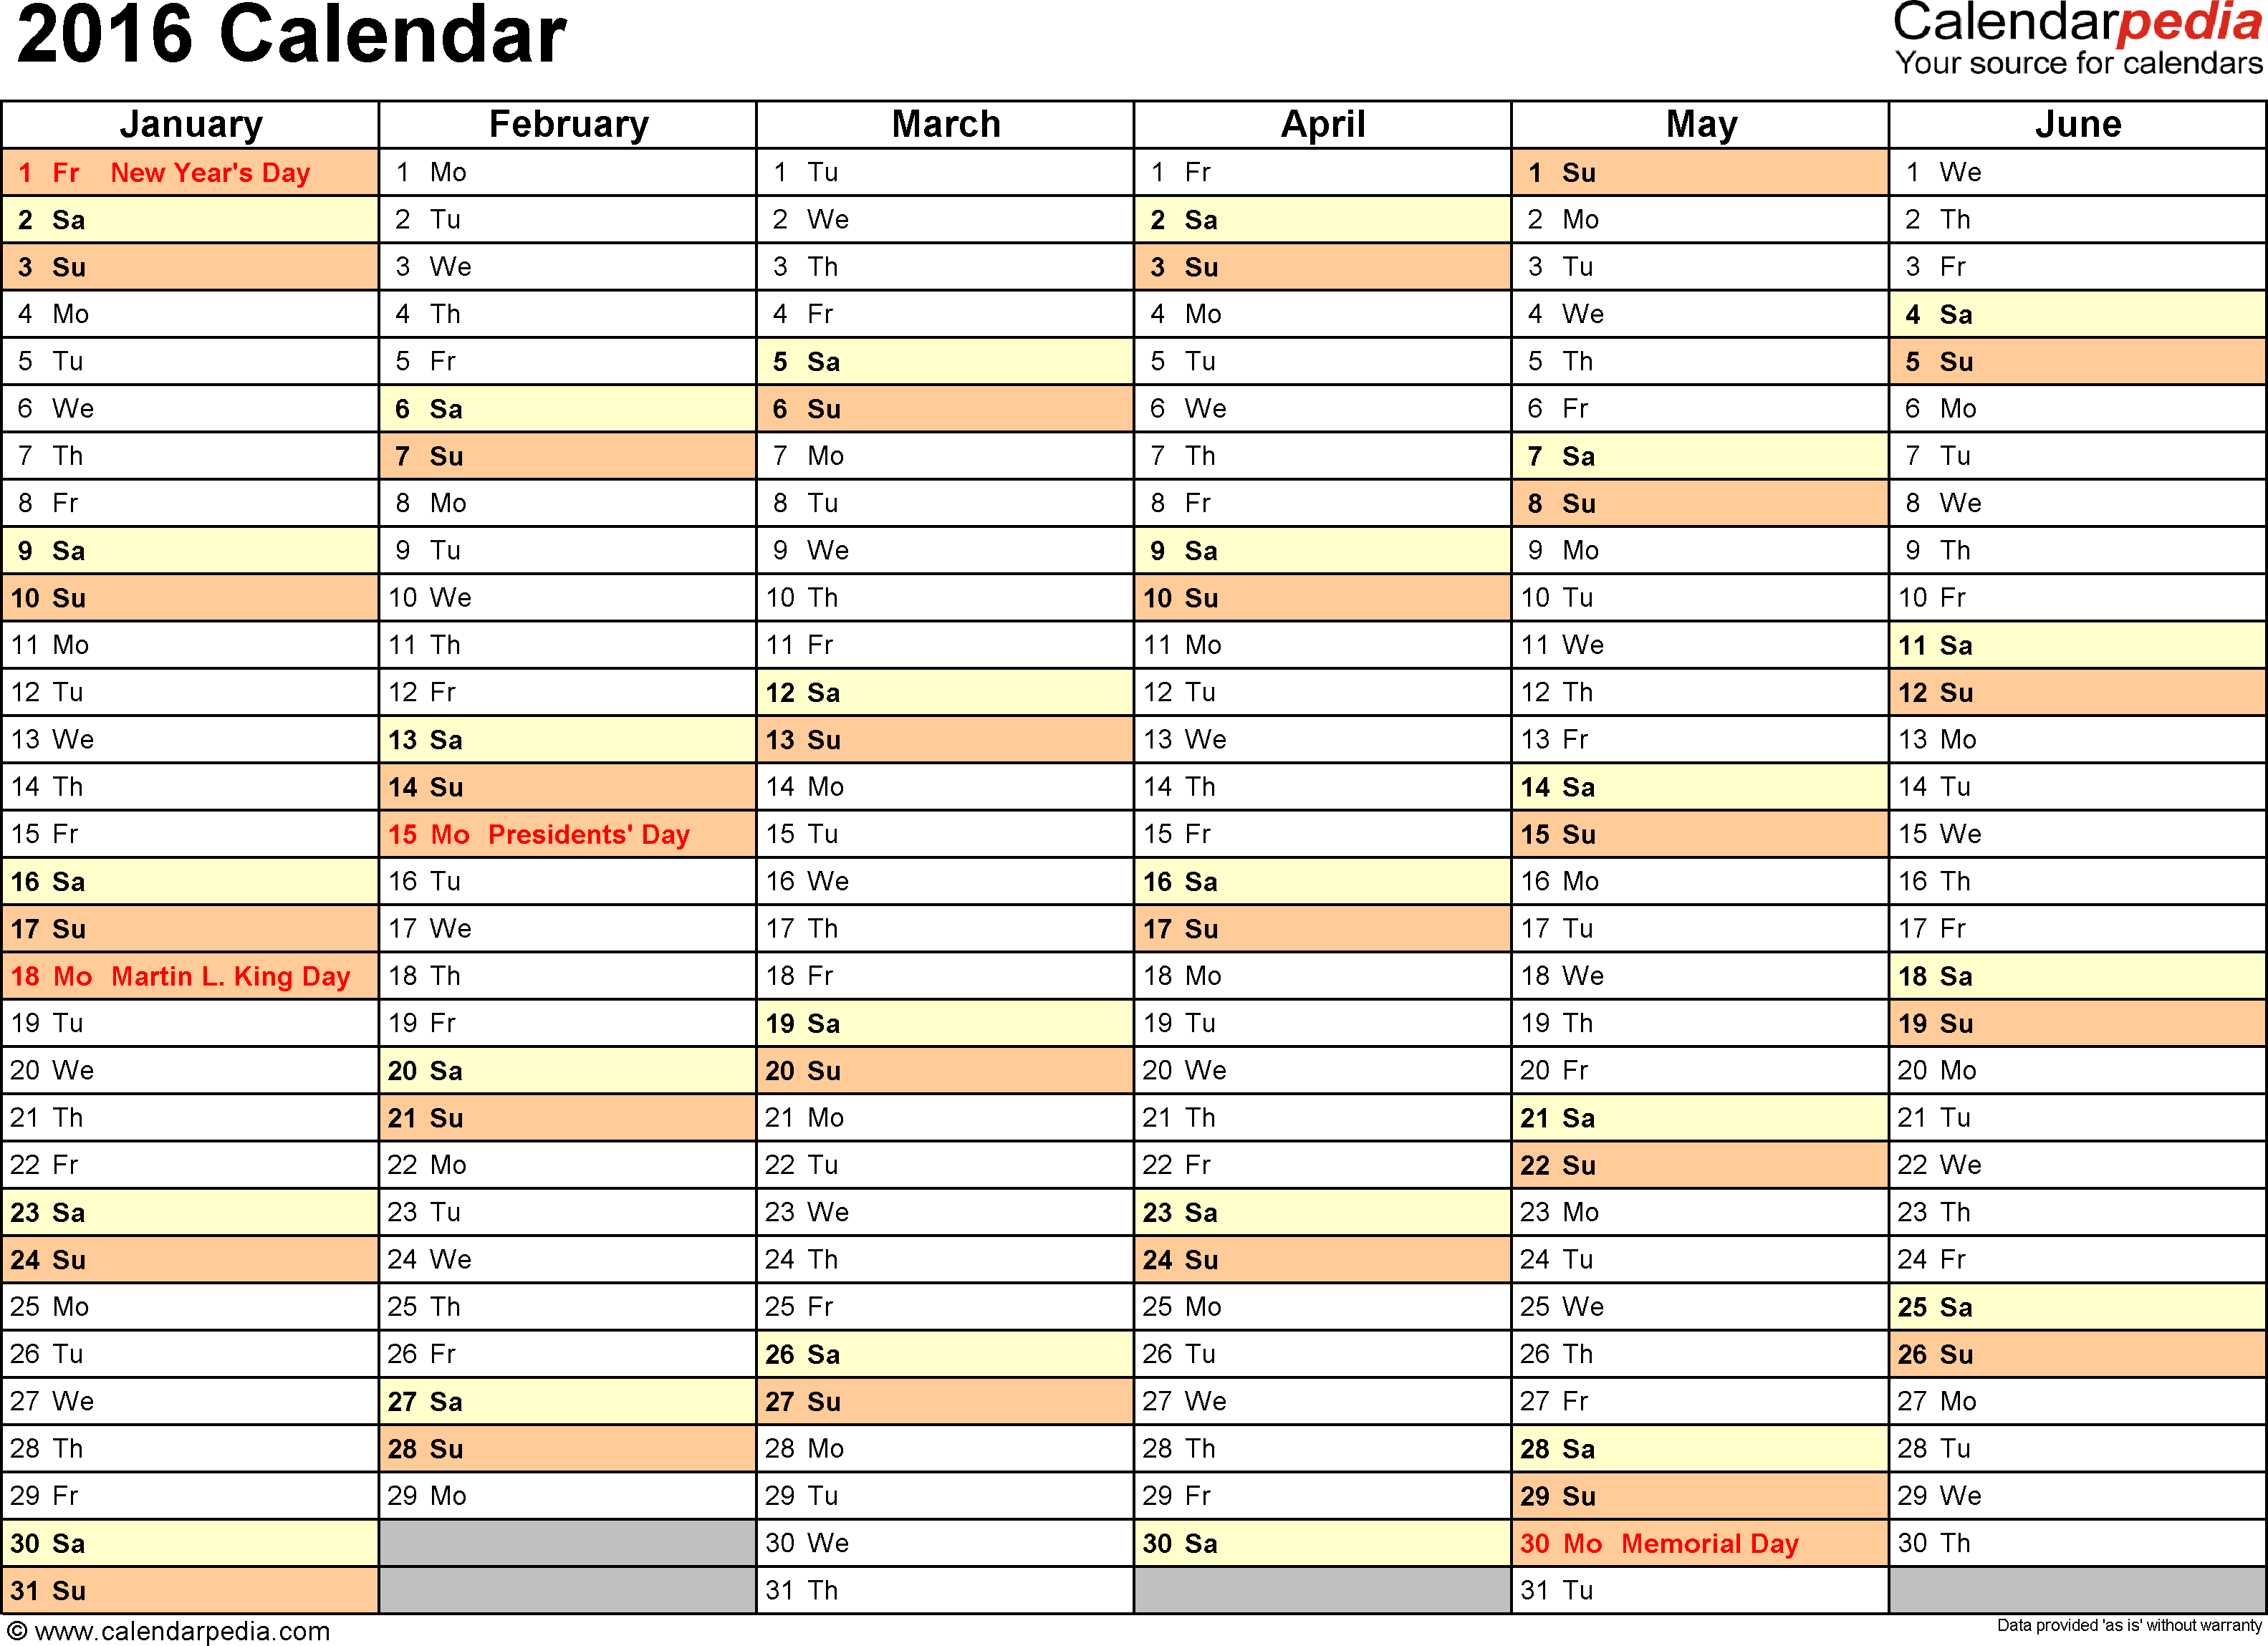 template 4 2016 calendar for excel months horizontally 2 pages landscape orientation